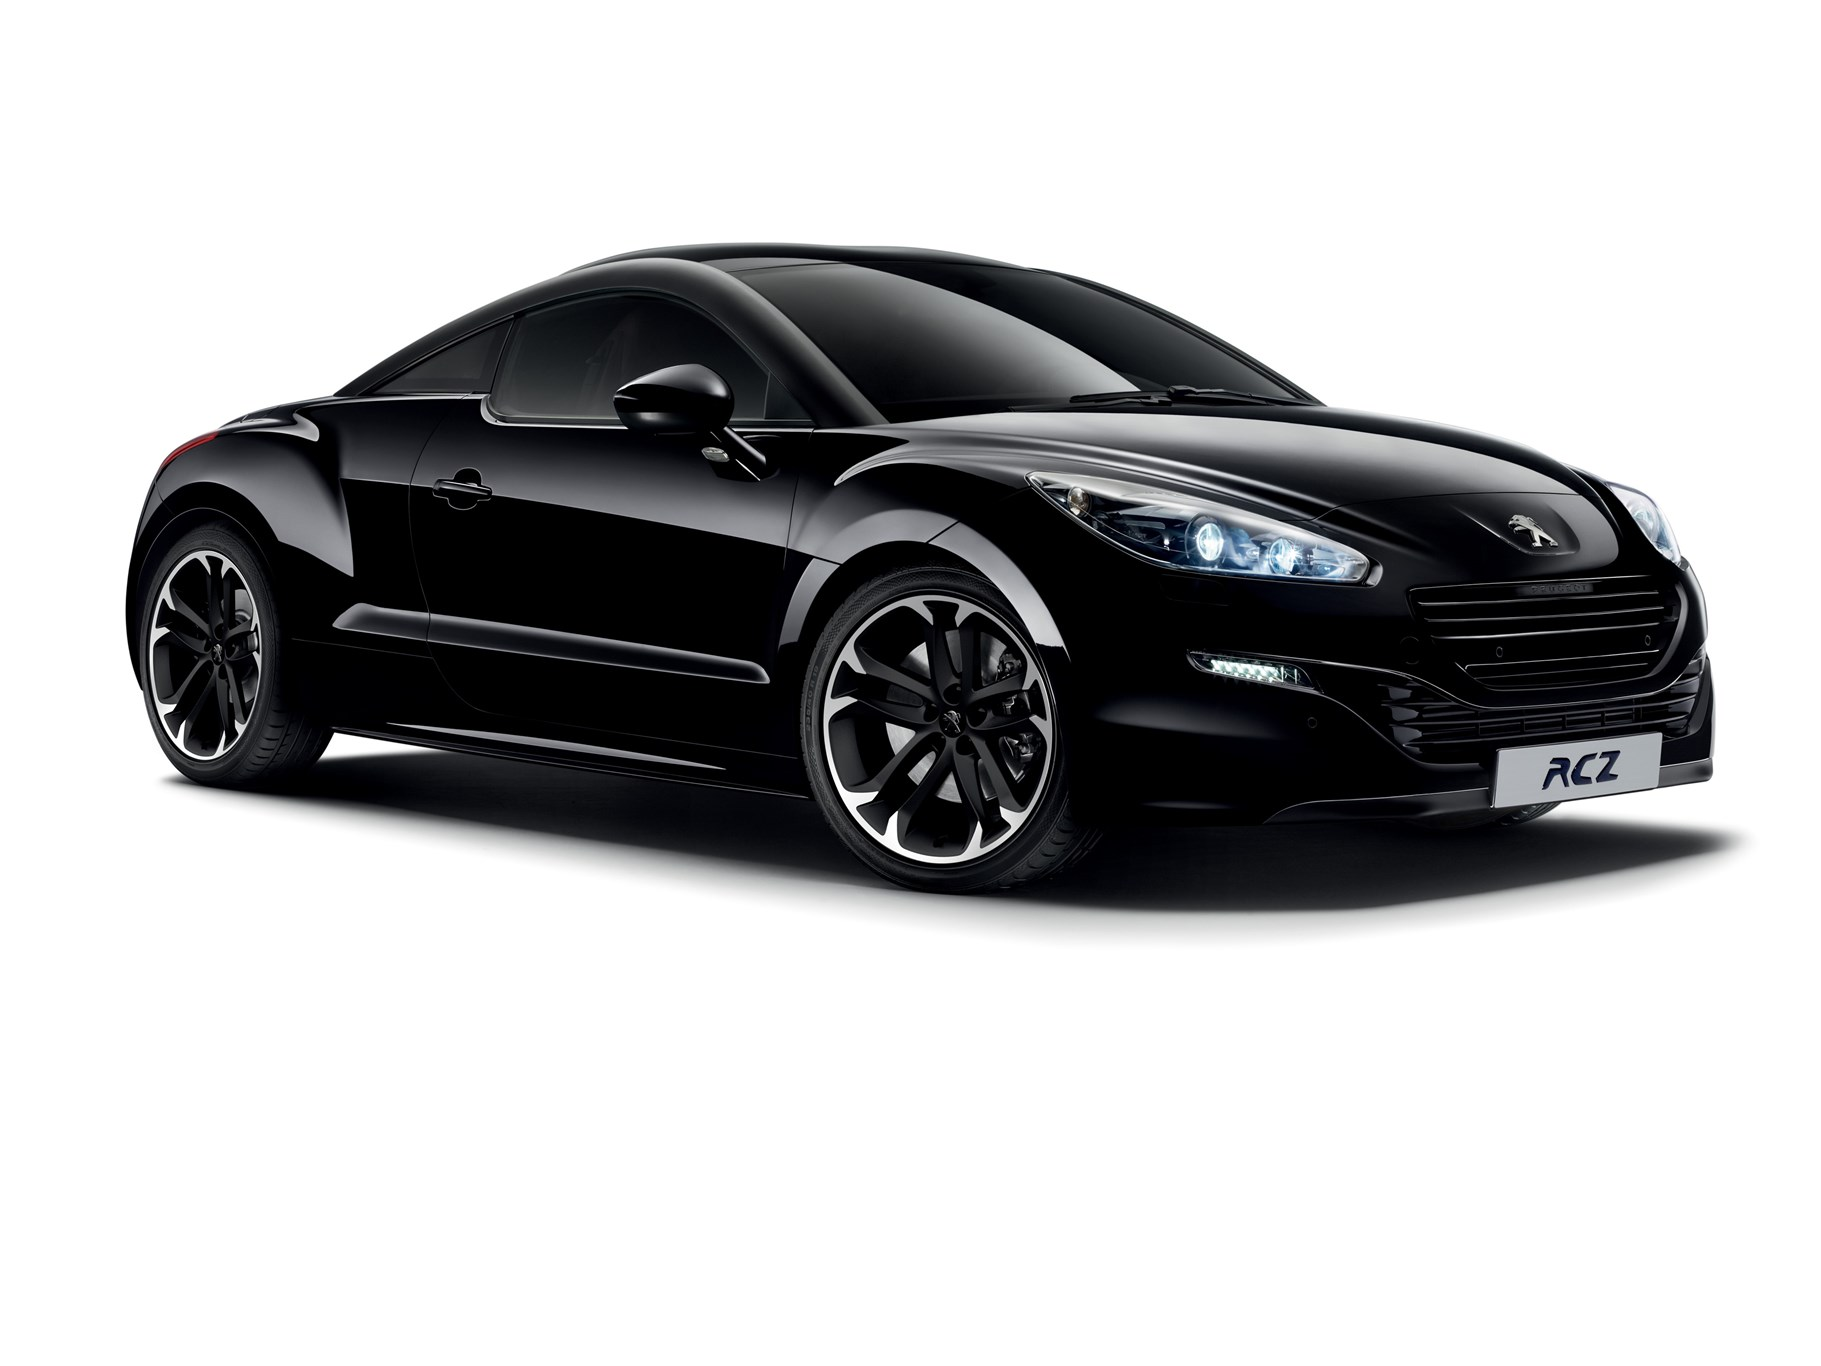 Peugeot Rcz By Car Magazine